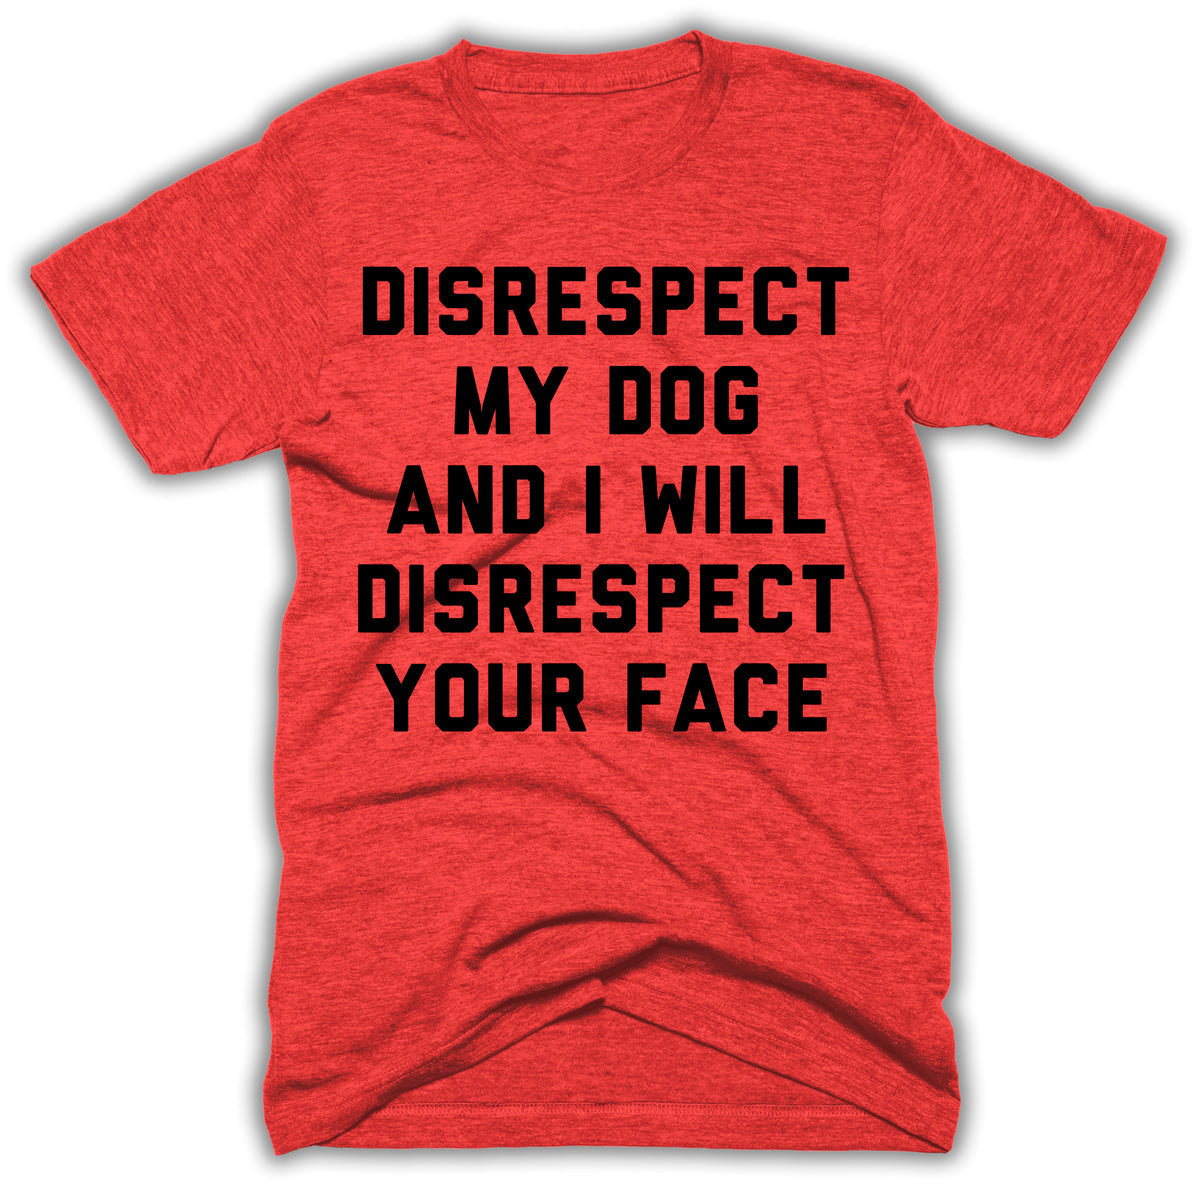 eca8542a Disrespect My Dog And I Will Disrespect Your Face Mens Shirt –  Basementshirts